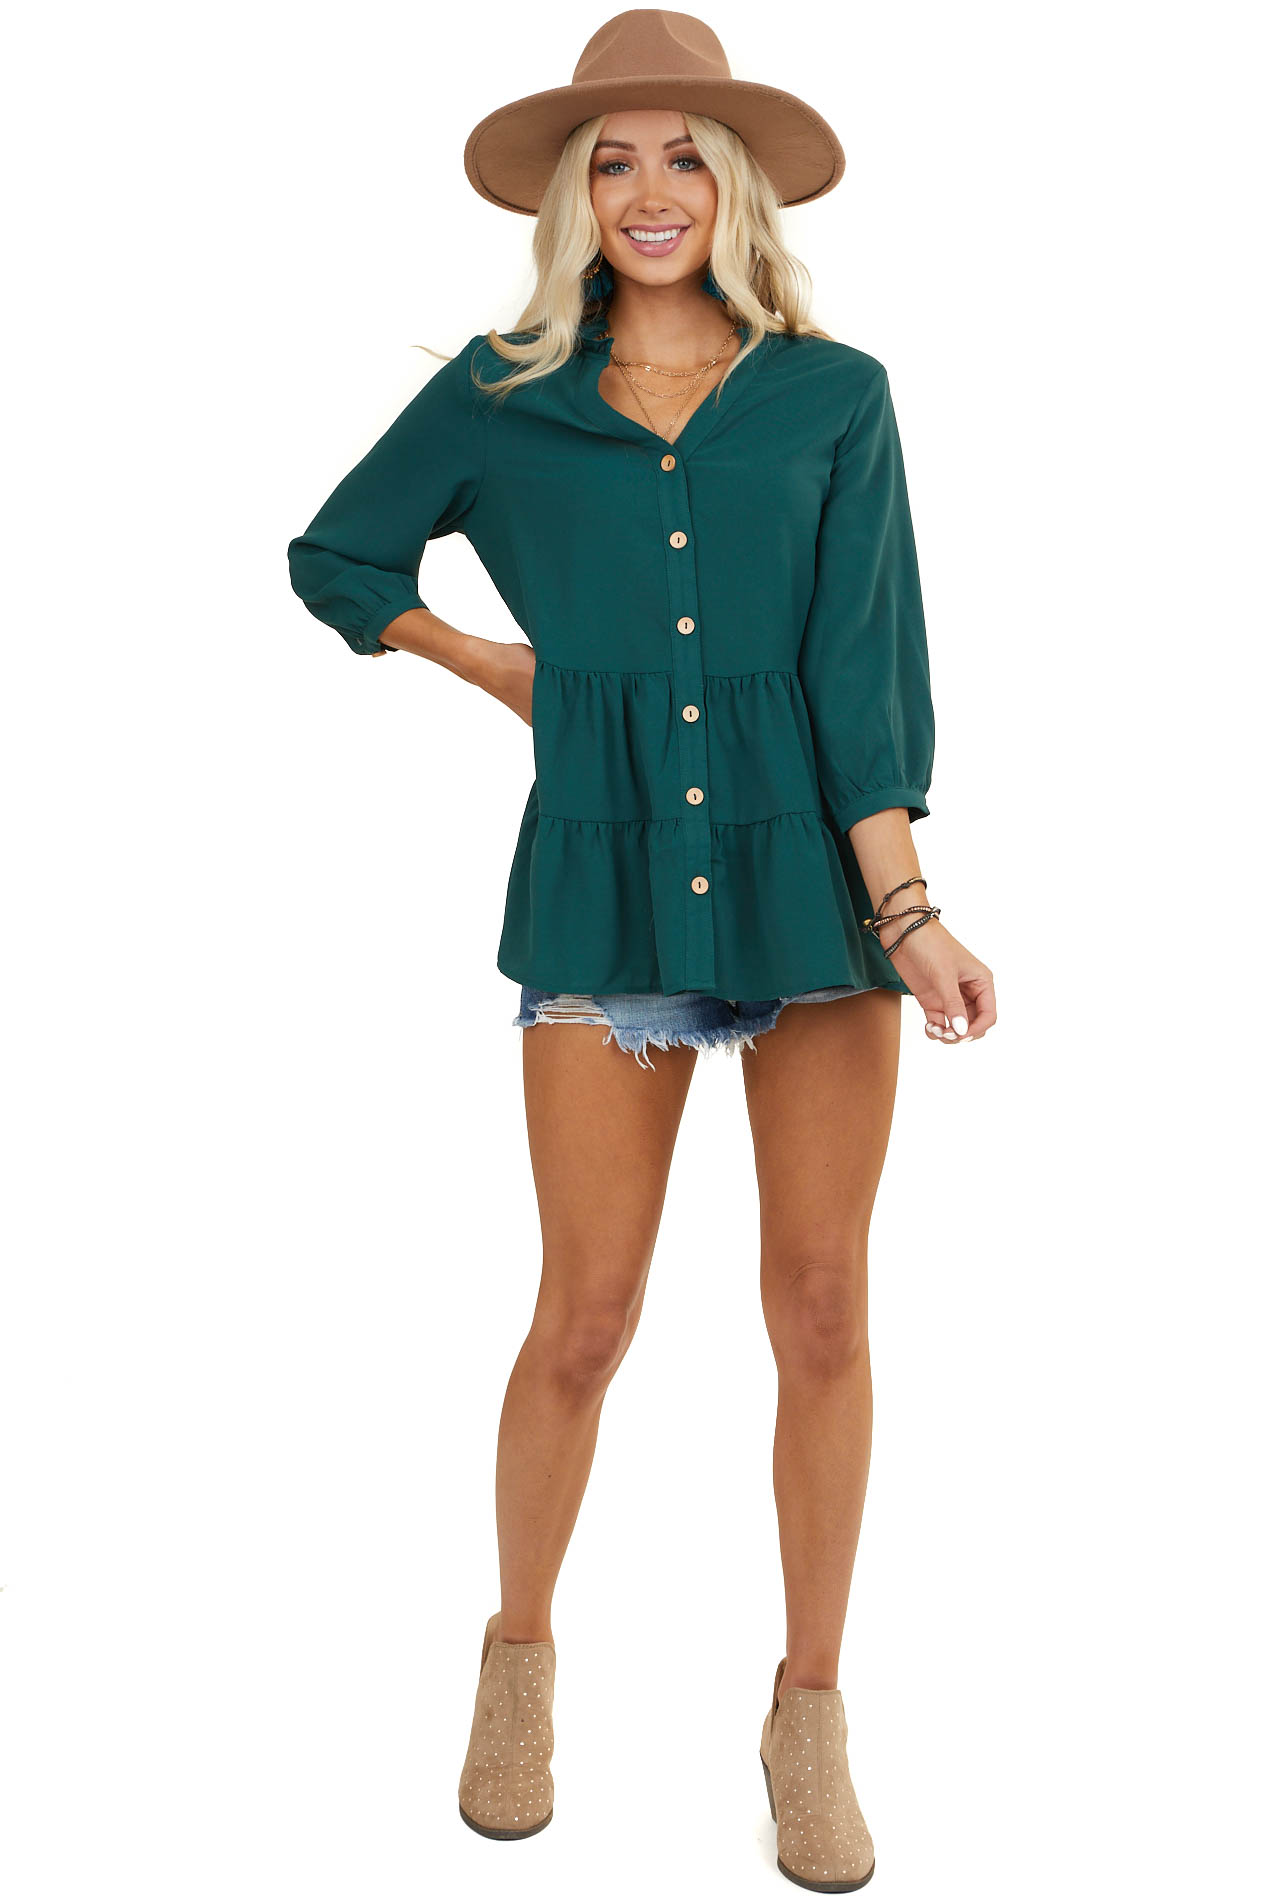 pine-green-tiered-blouse-with-front-buttons-and-3/4-sleeves-front-_07302020